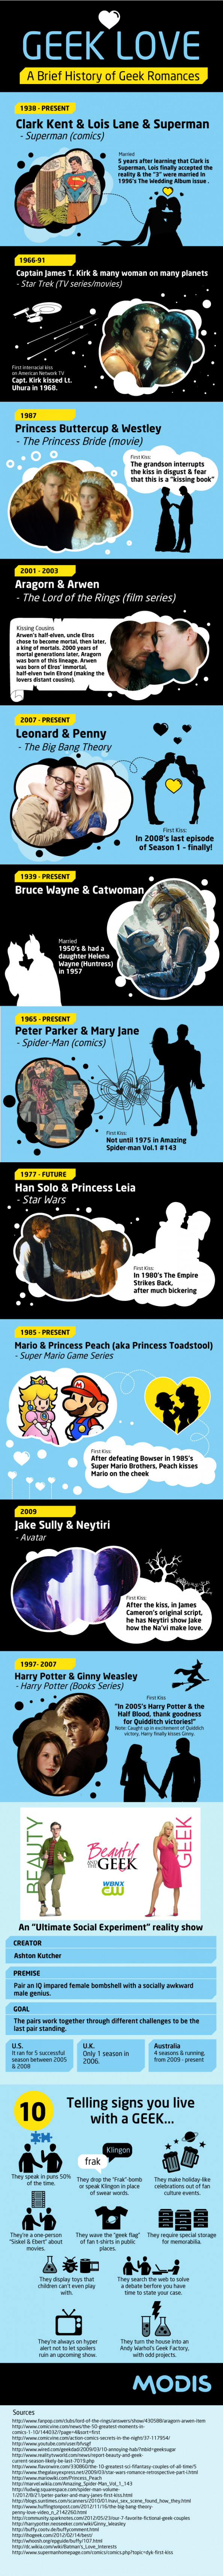 Geek Love: A Brief History of Geek Romances Infographic